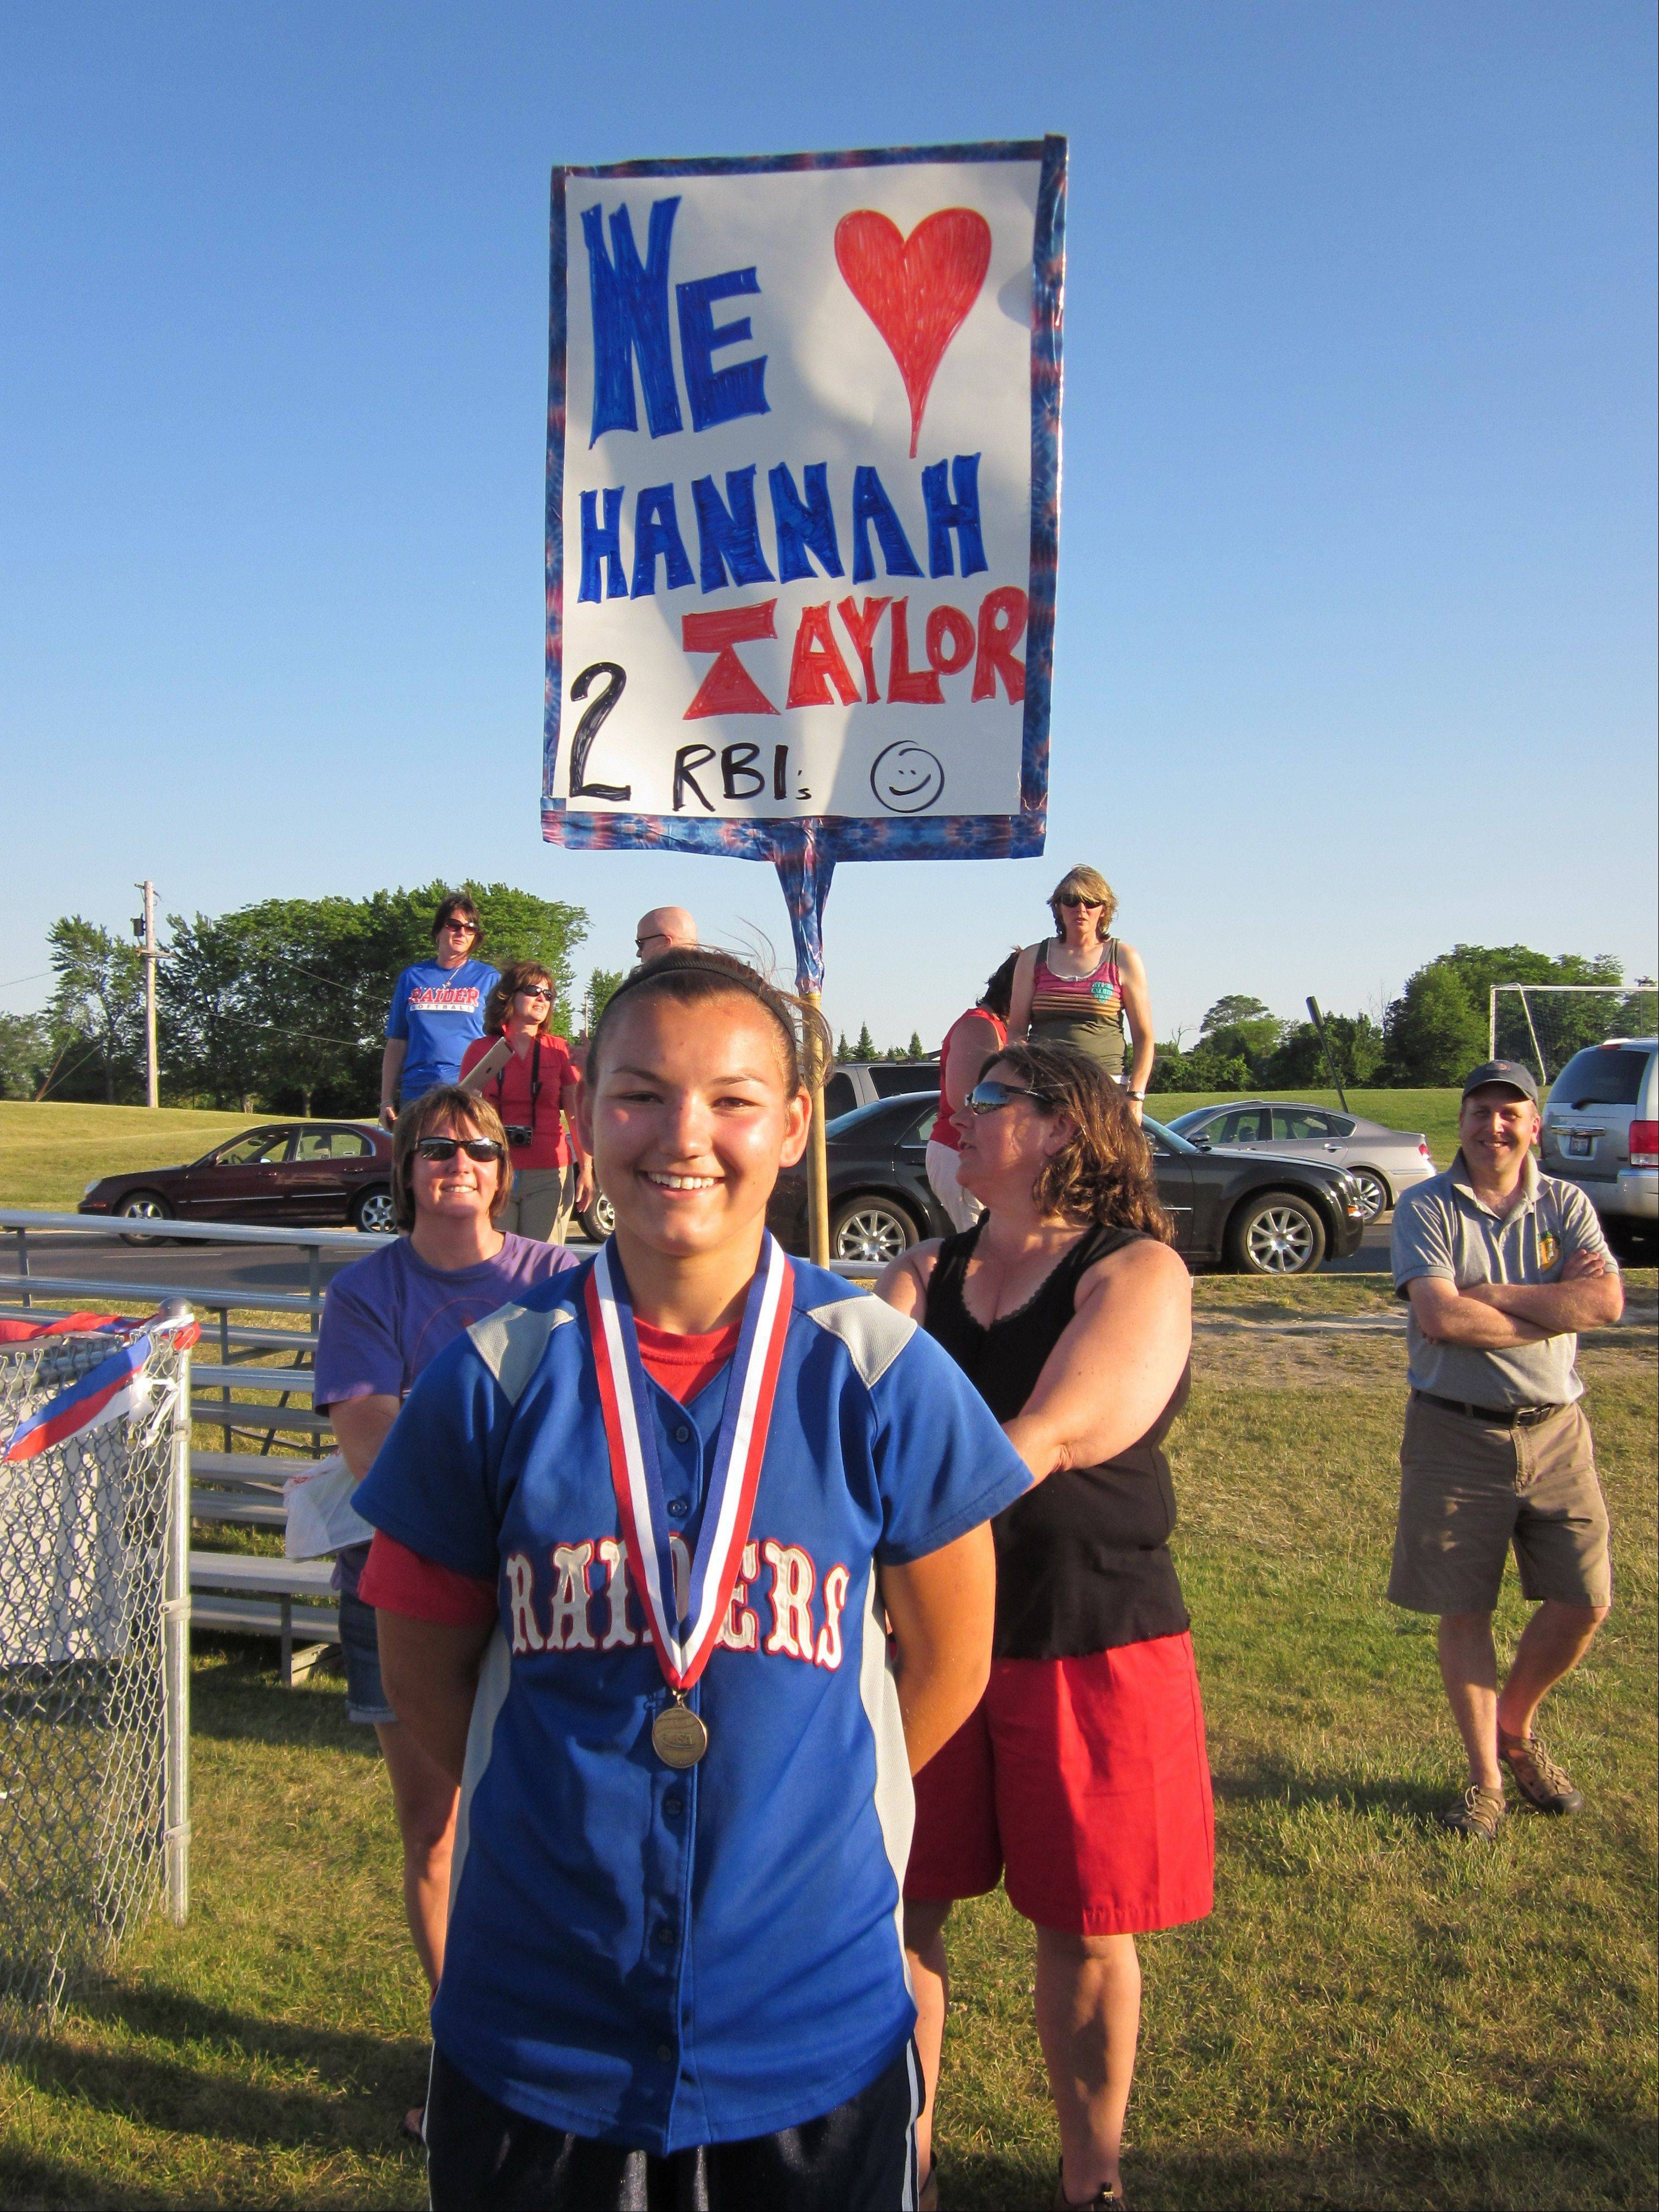 Hannah Taylor, who drove in the two runs the Raiders needed to win the state softball title, was honored on a poster her aunt made.